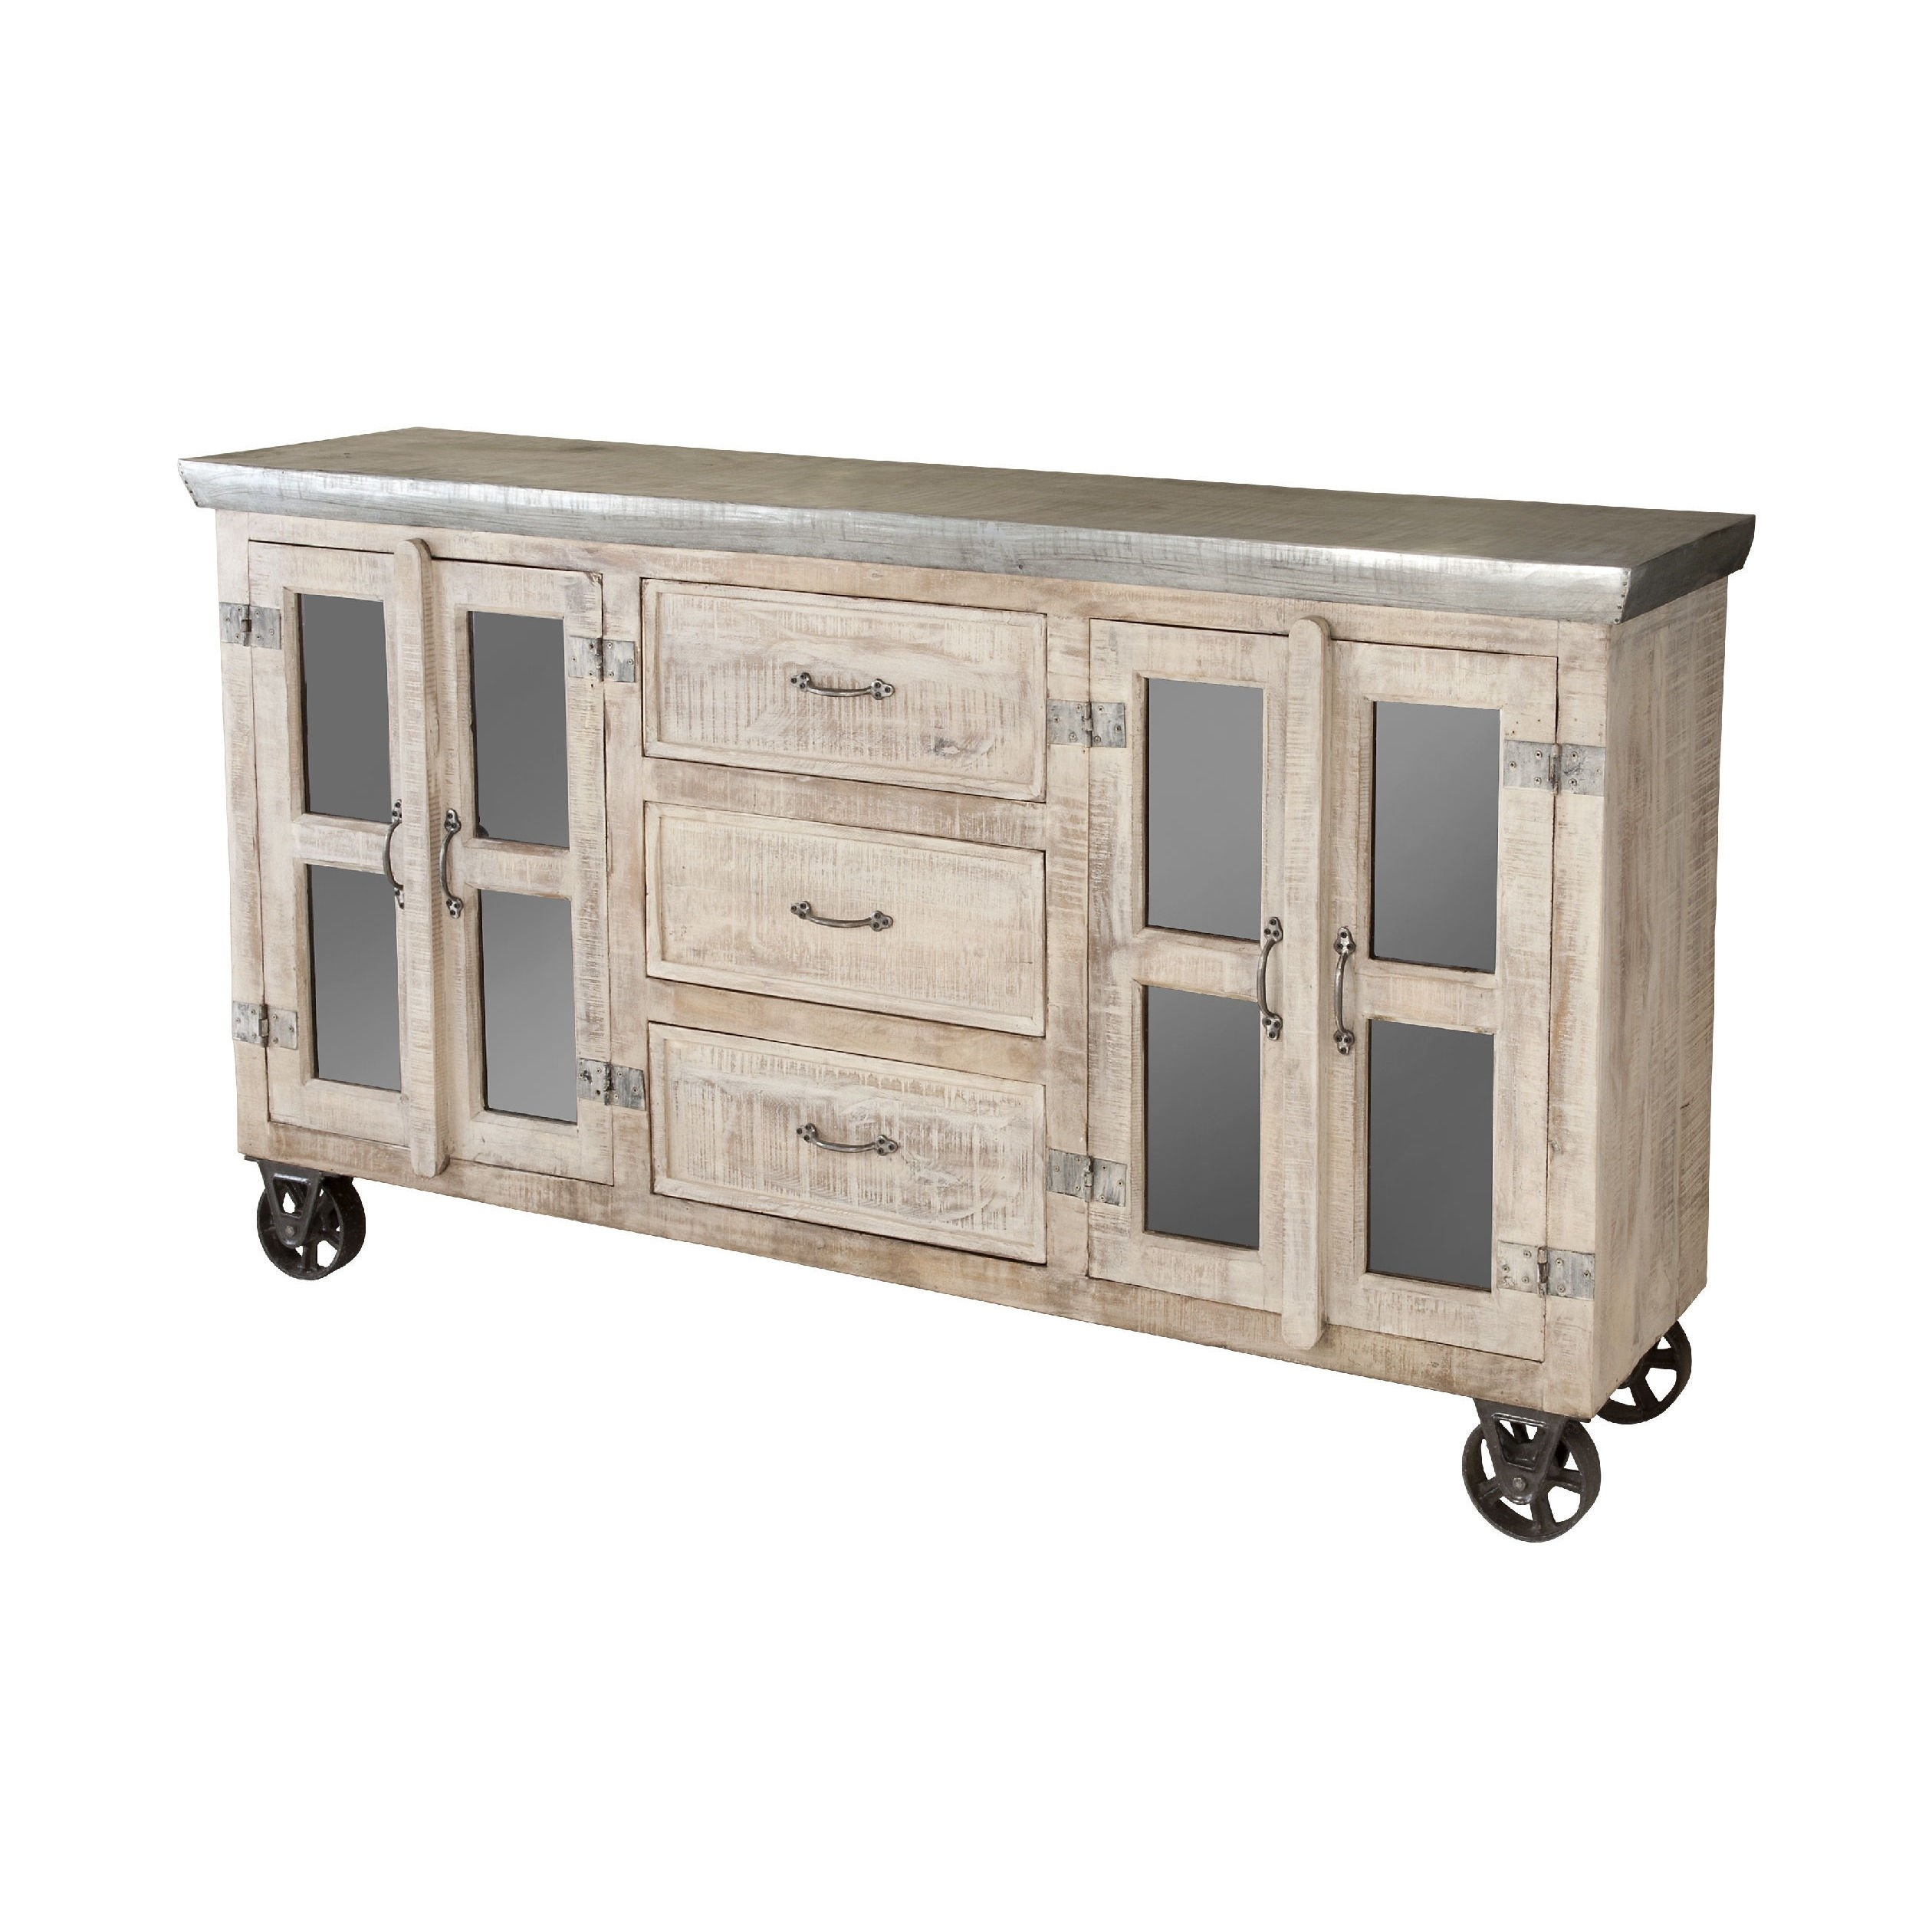 Shop Bertram Sideboard - Free Shipping Today - Overstock - 9121554 with White Wash 4-Door Galvanized Sideboards (Image 21 of 30)